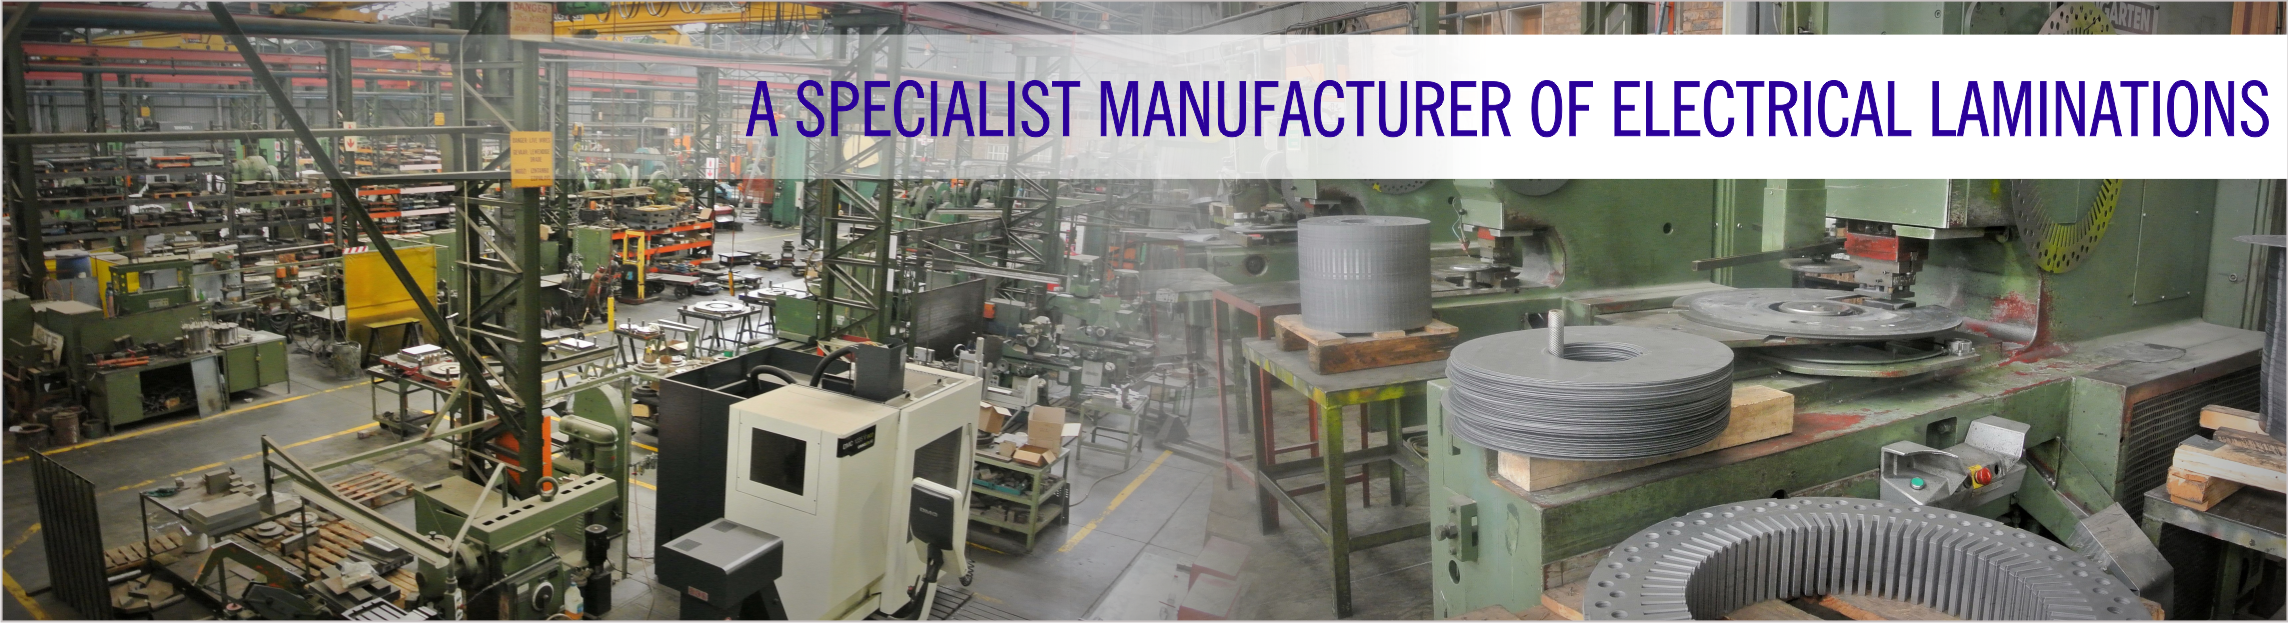 A Specialist Manufacturer of Electrical Laminations